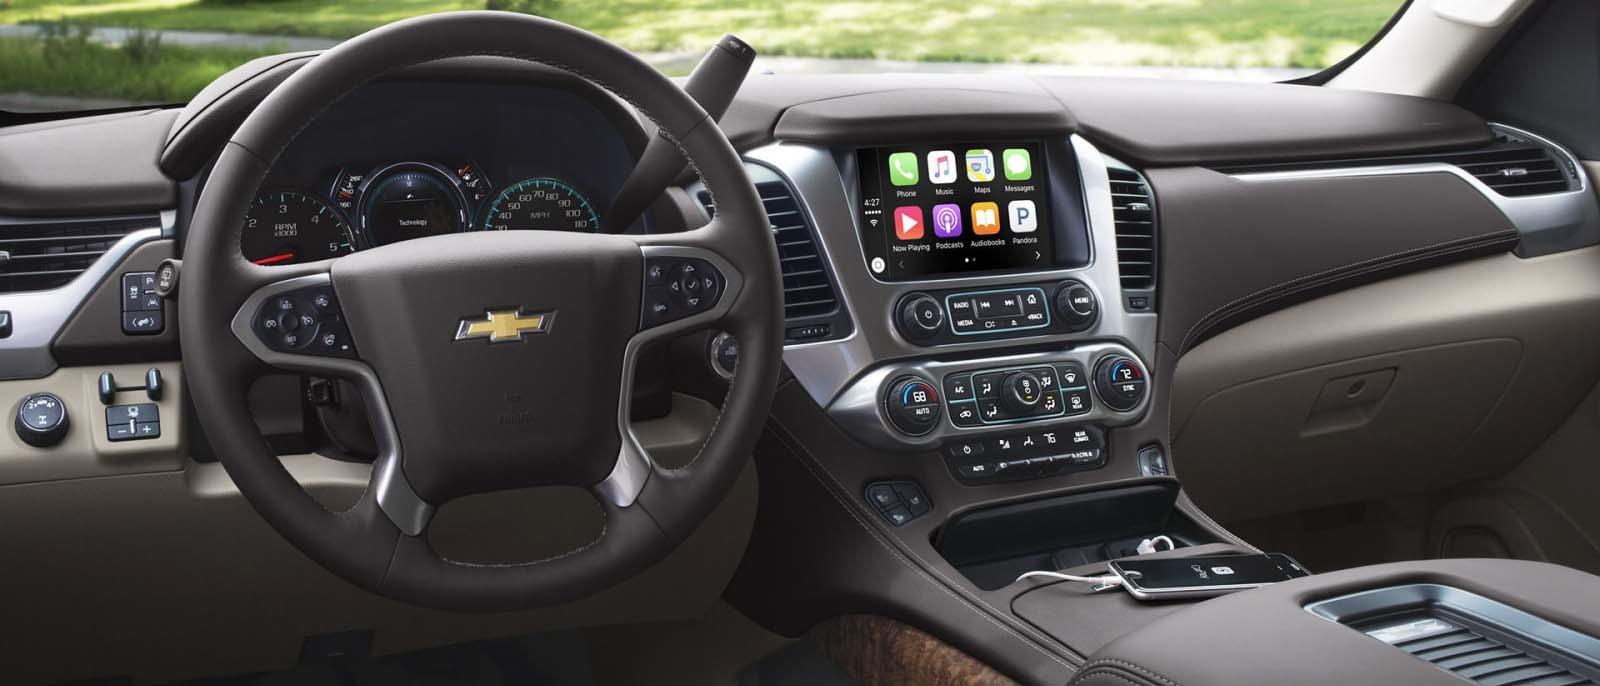 2017 Chevy Suburban Interior